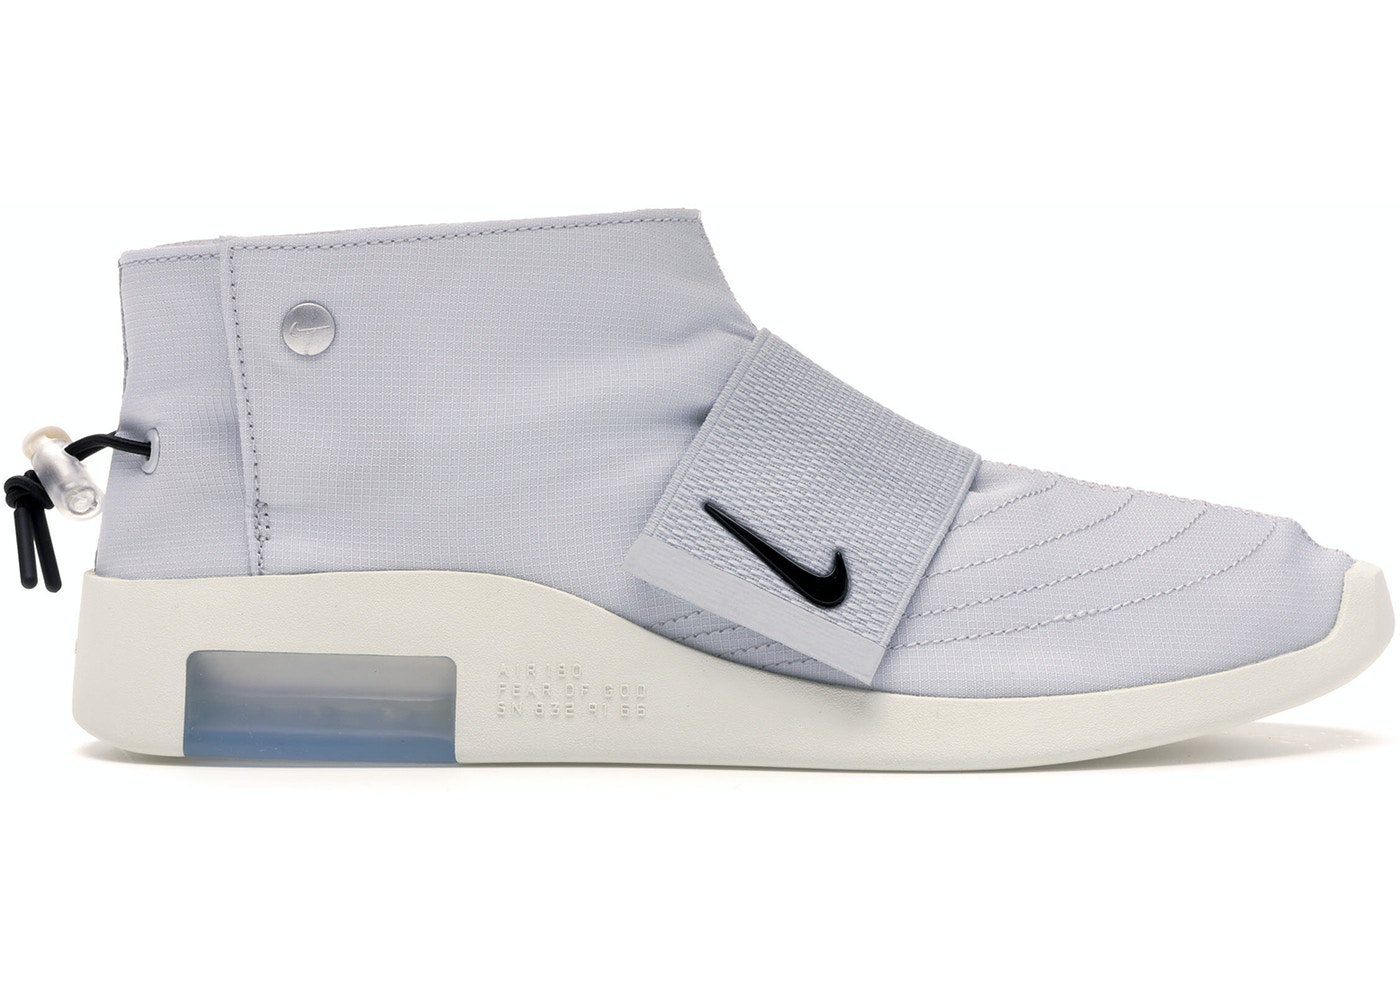 Nike Air Fear Of God Moccasin Pure Platinum - AT8086-001